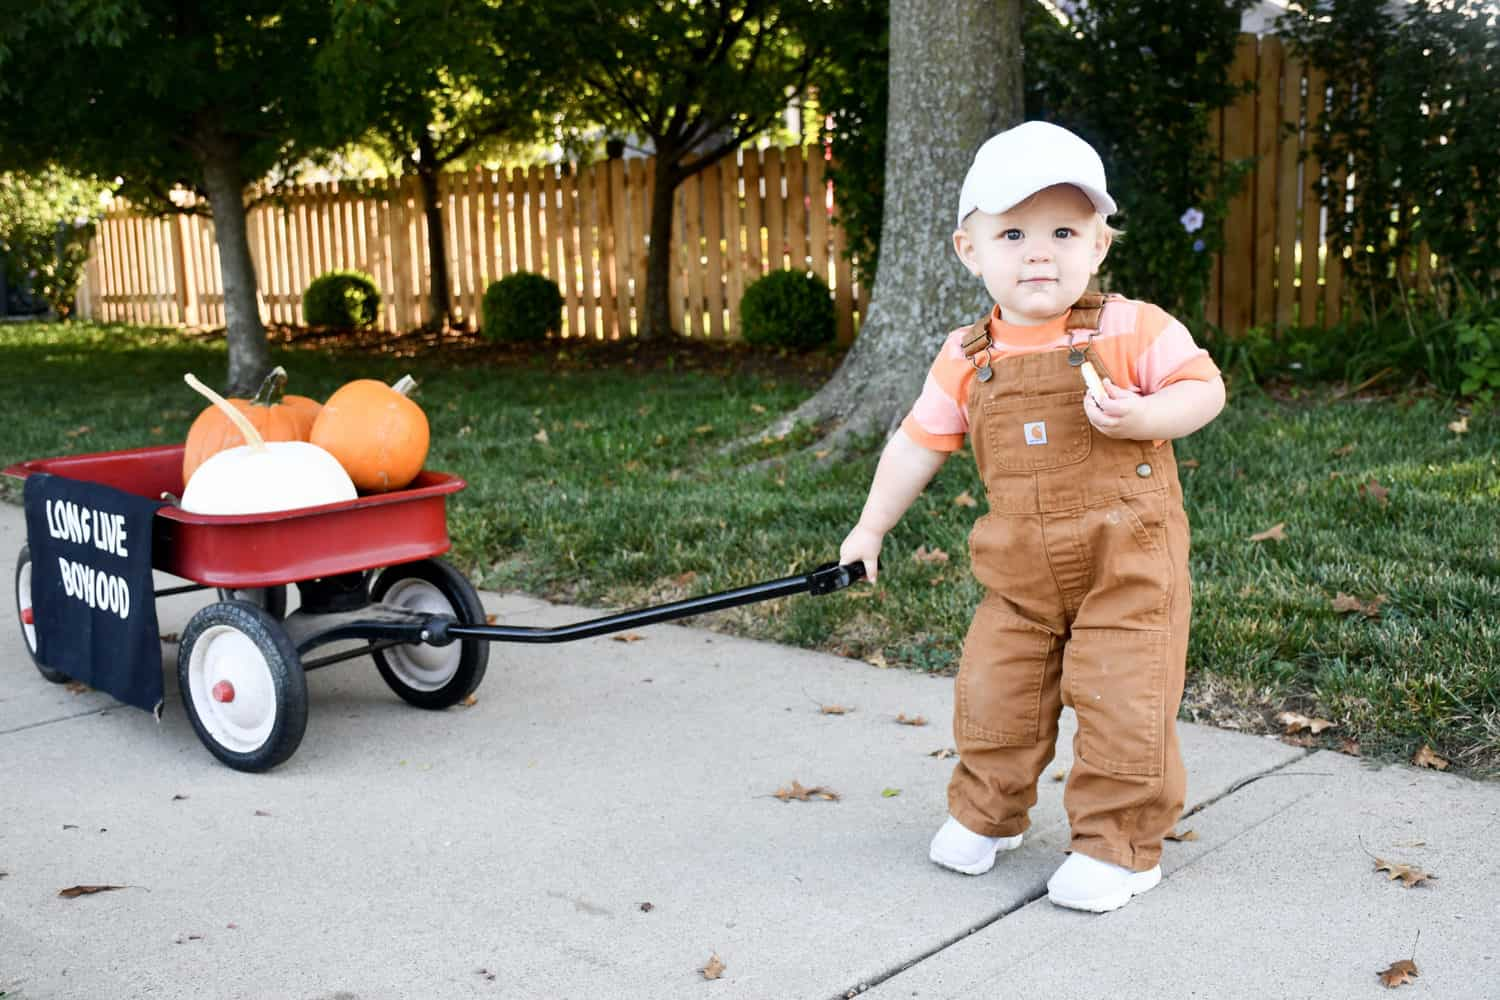 Child pulling wagon with pumpkins in it.